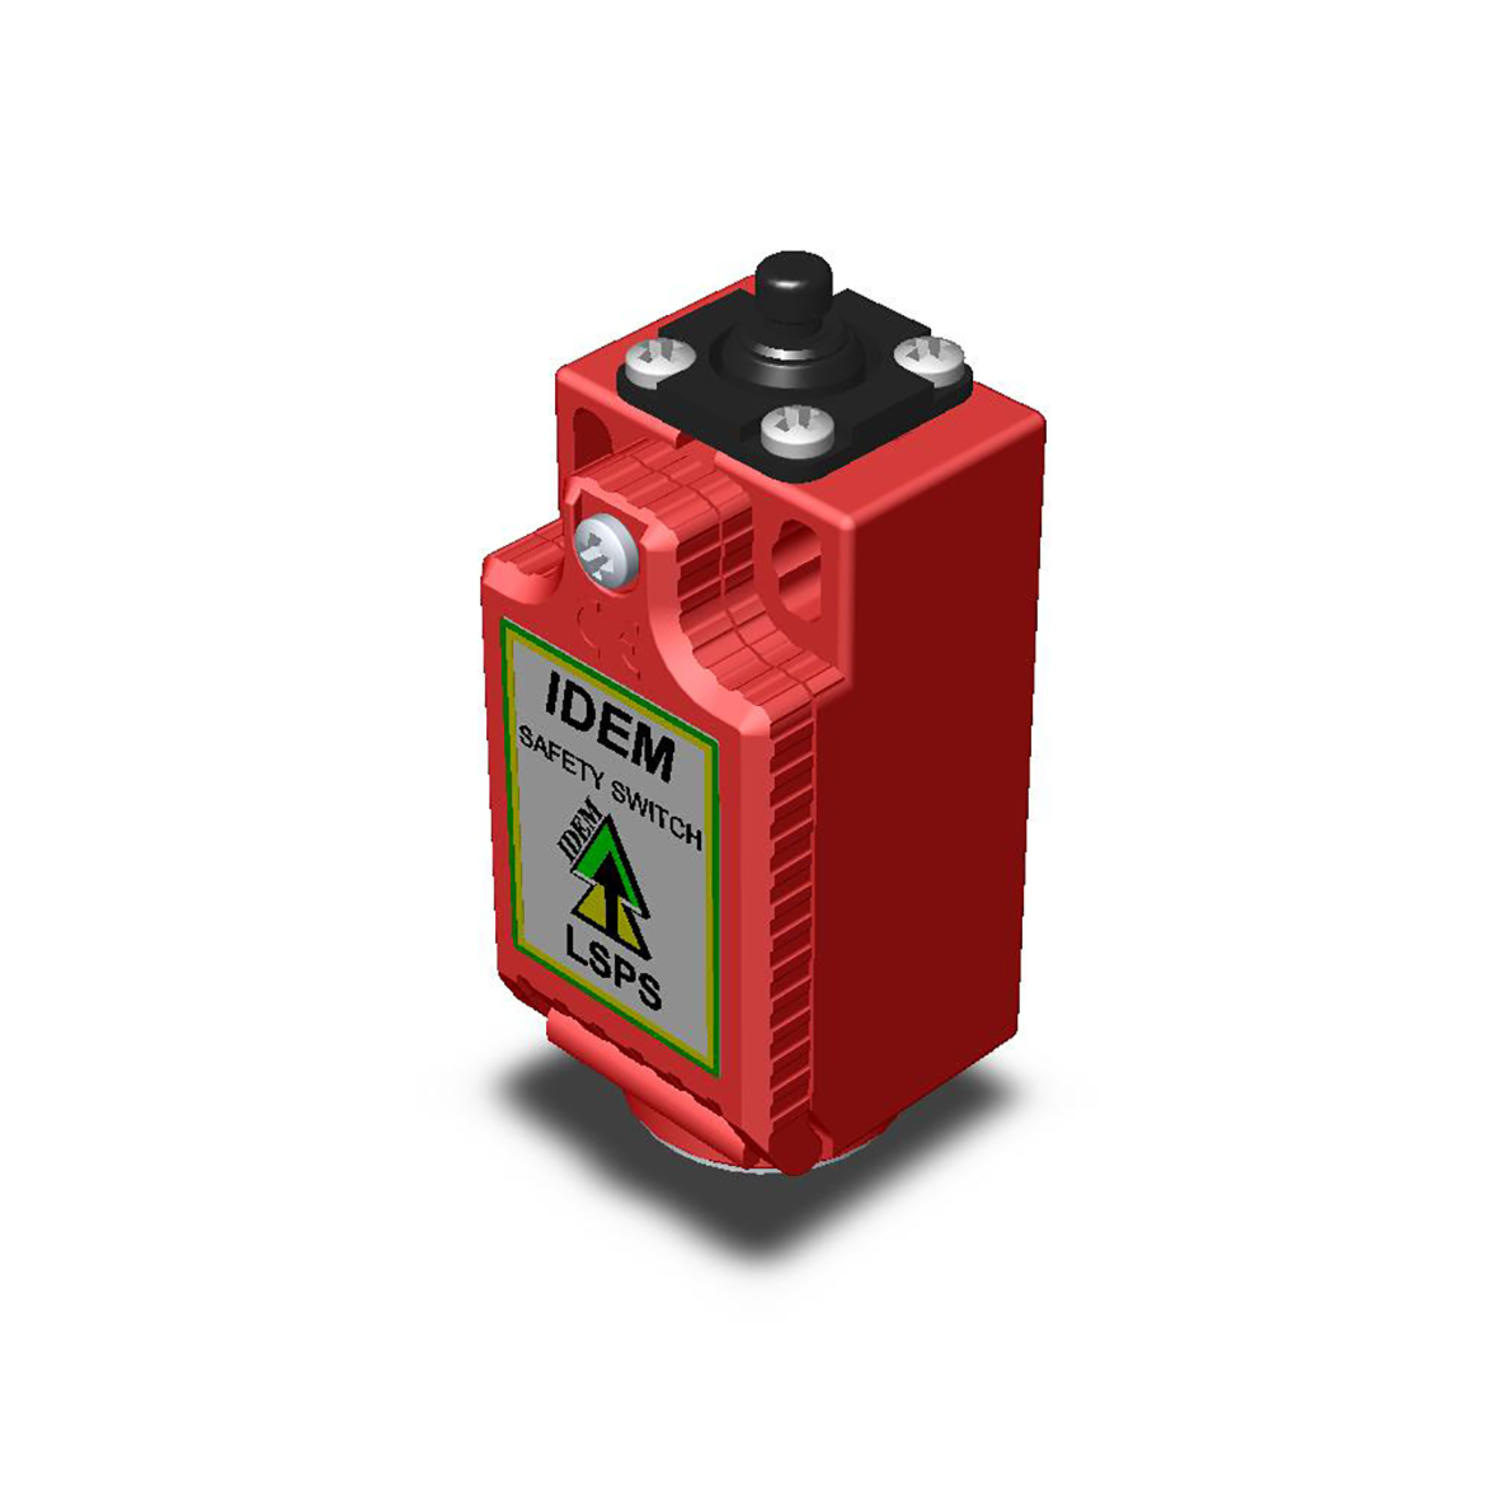 Safety limit switches - LSPS (plastic body)